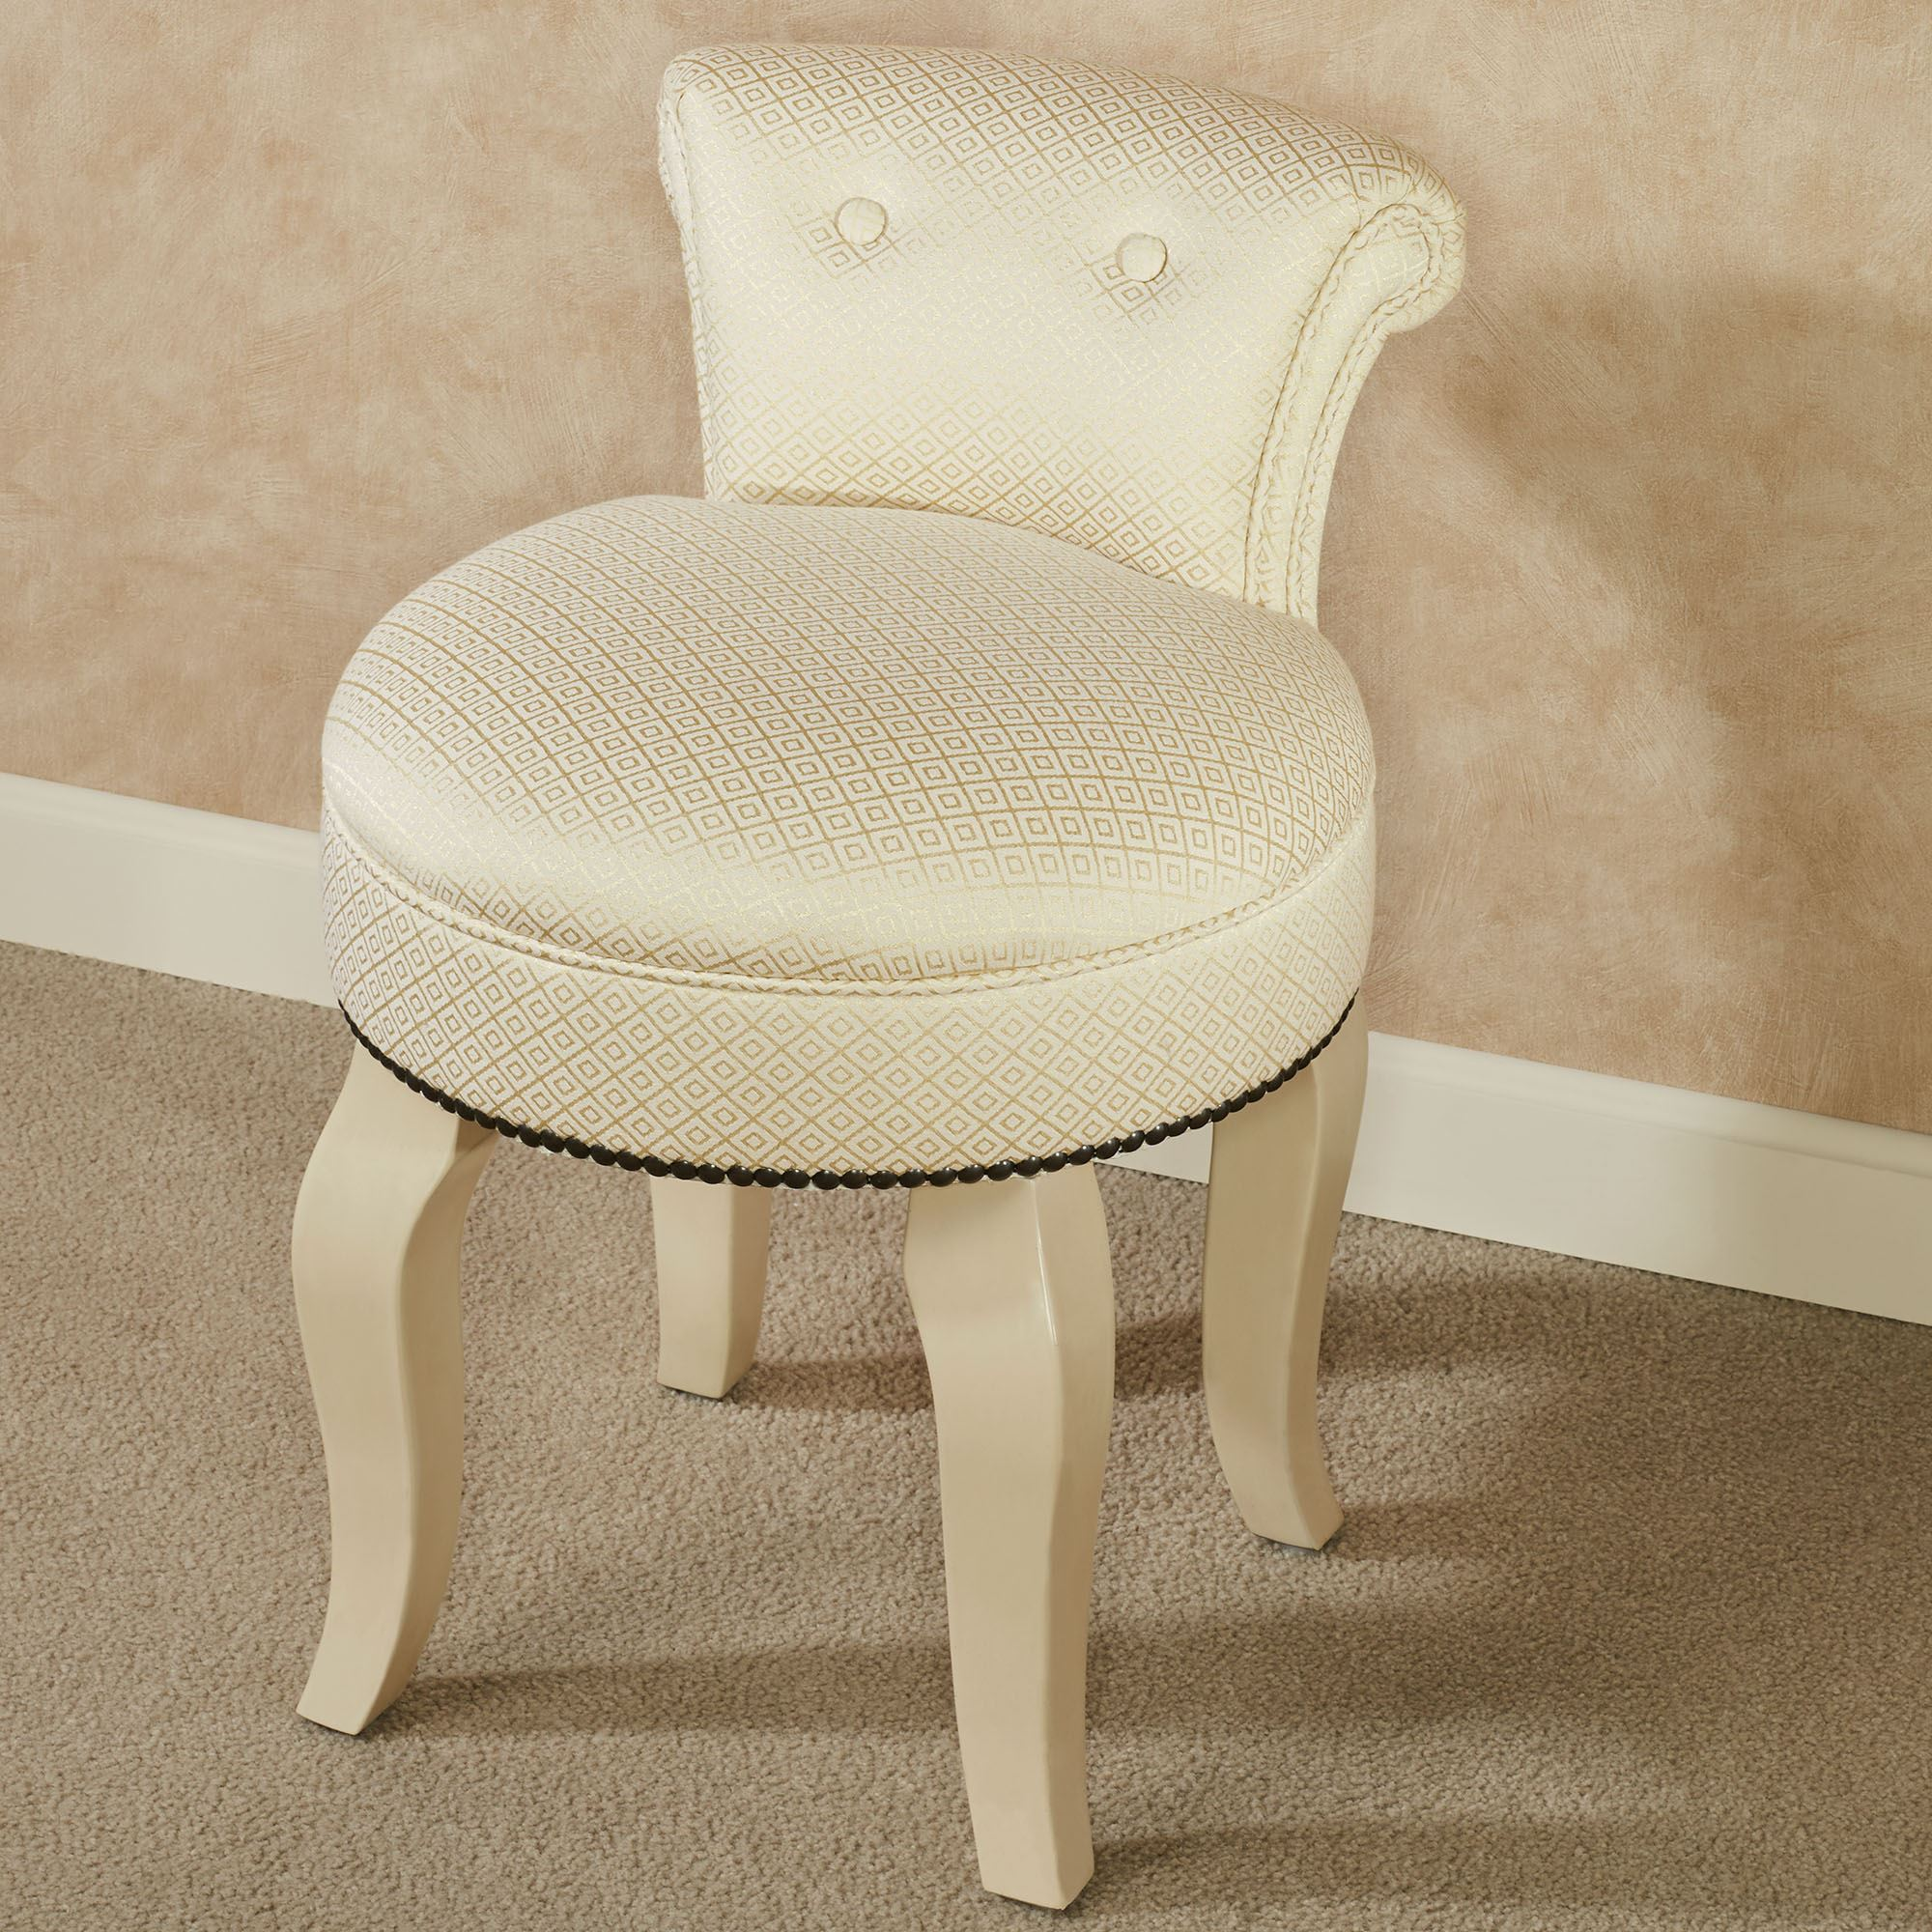 Tremendous Saraphina Upholstered Vanity Chair With Ivory Legs Machost Co Dining Chair Design Ideas Machostcouk